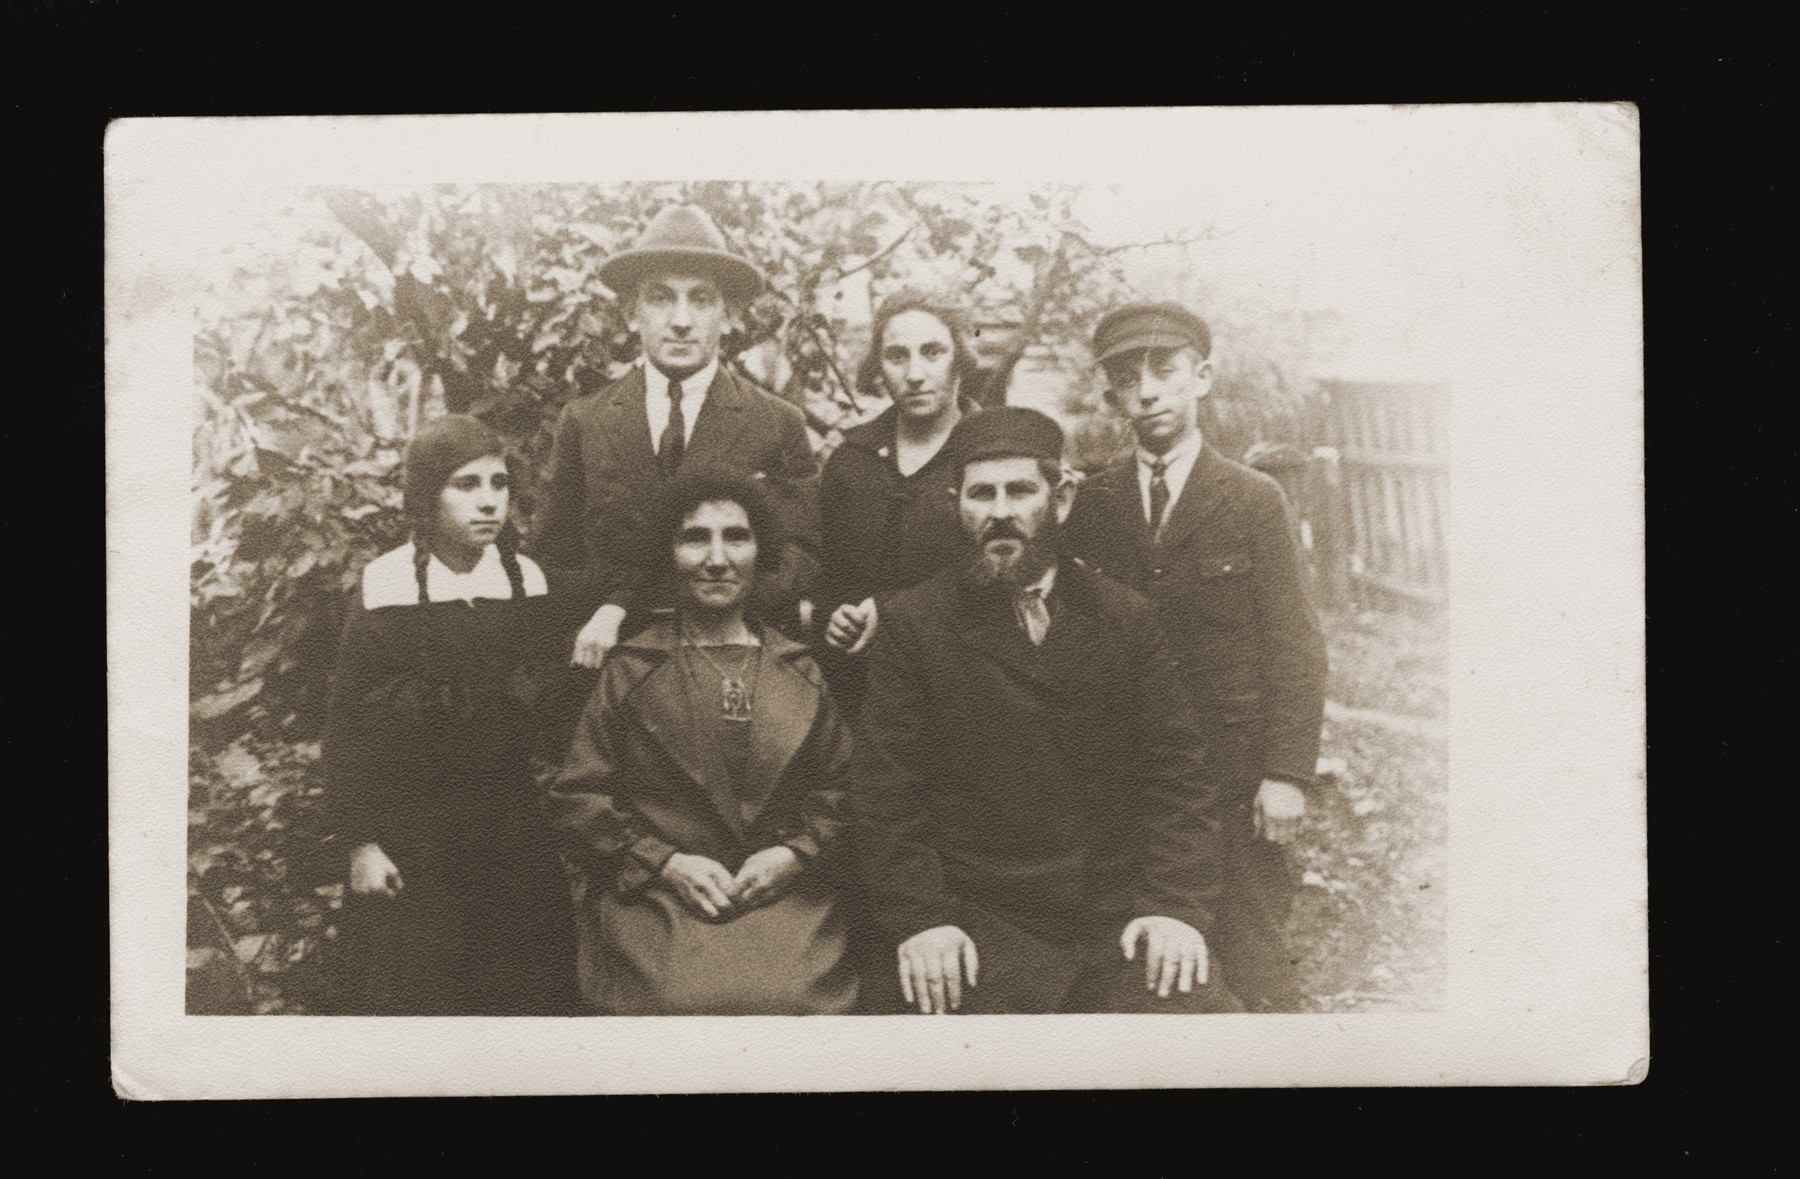 Portrait of the Gerlic family in their garden in Bedzin.  Pictured are Zishe Gerlic, his wife Sheine Esther, daughters Beltsha and Chava, and sons Velvel and Yehiel.